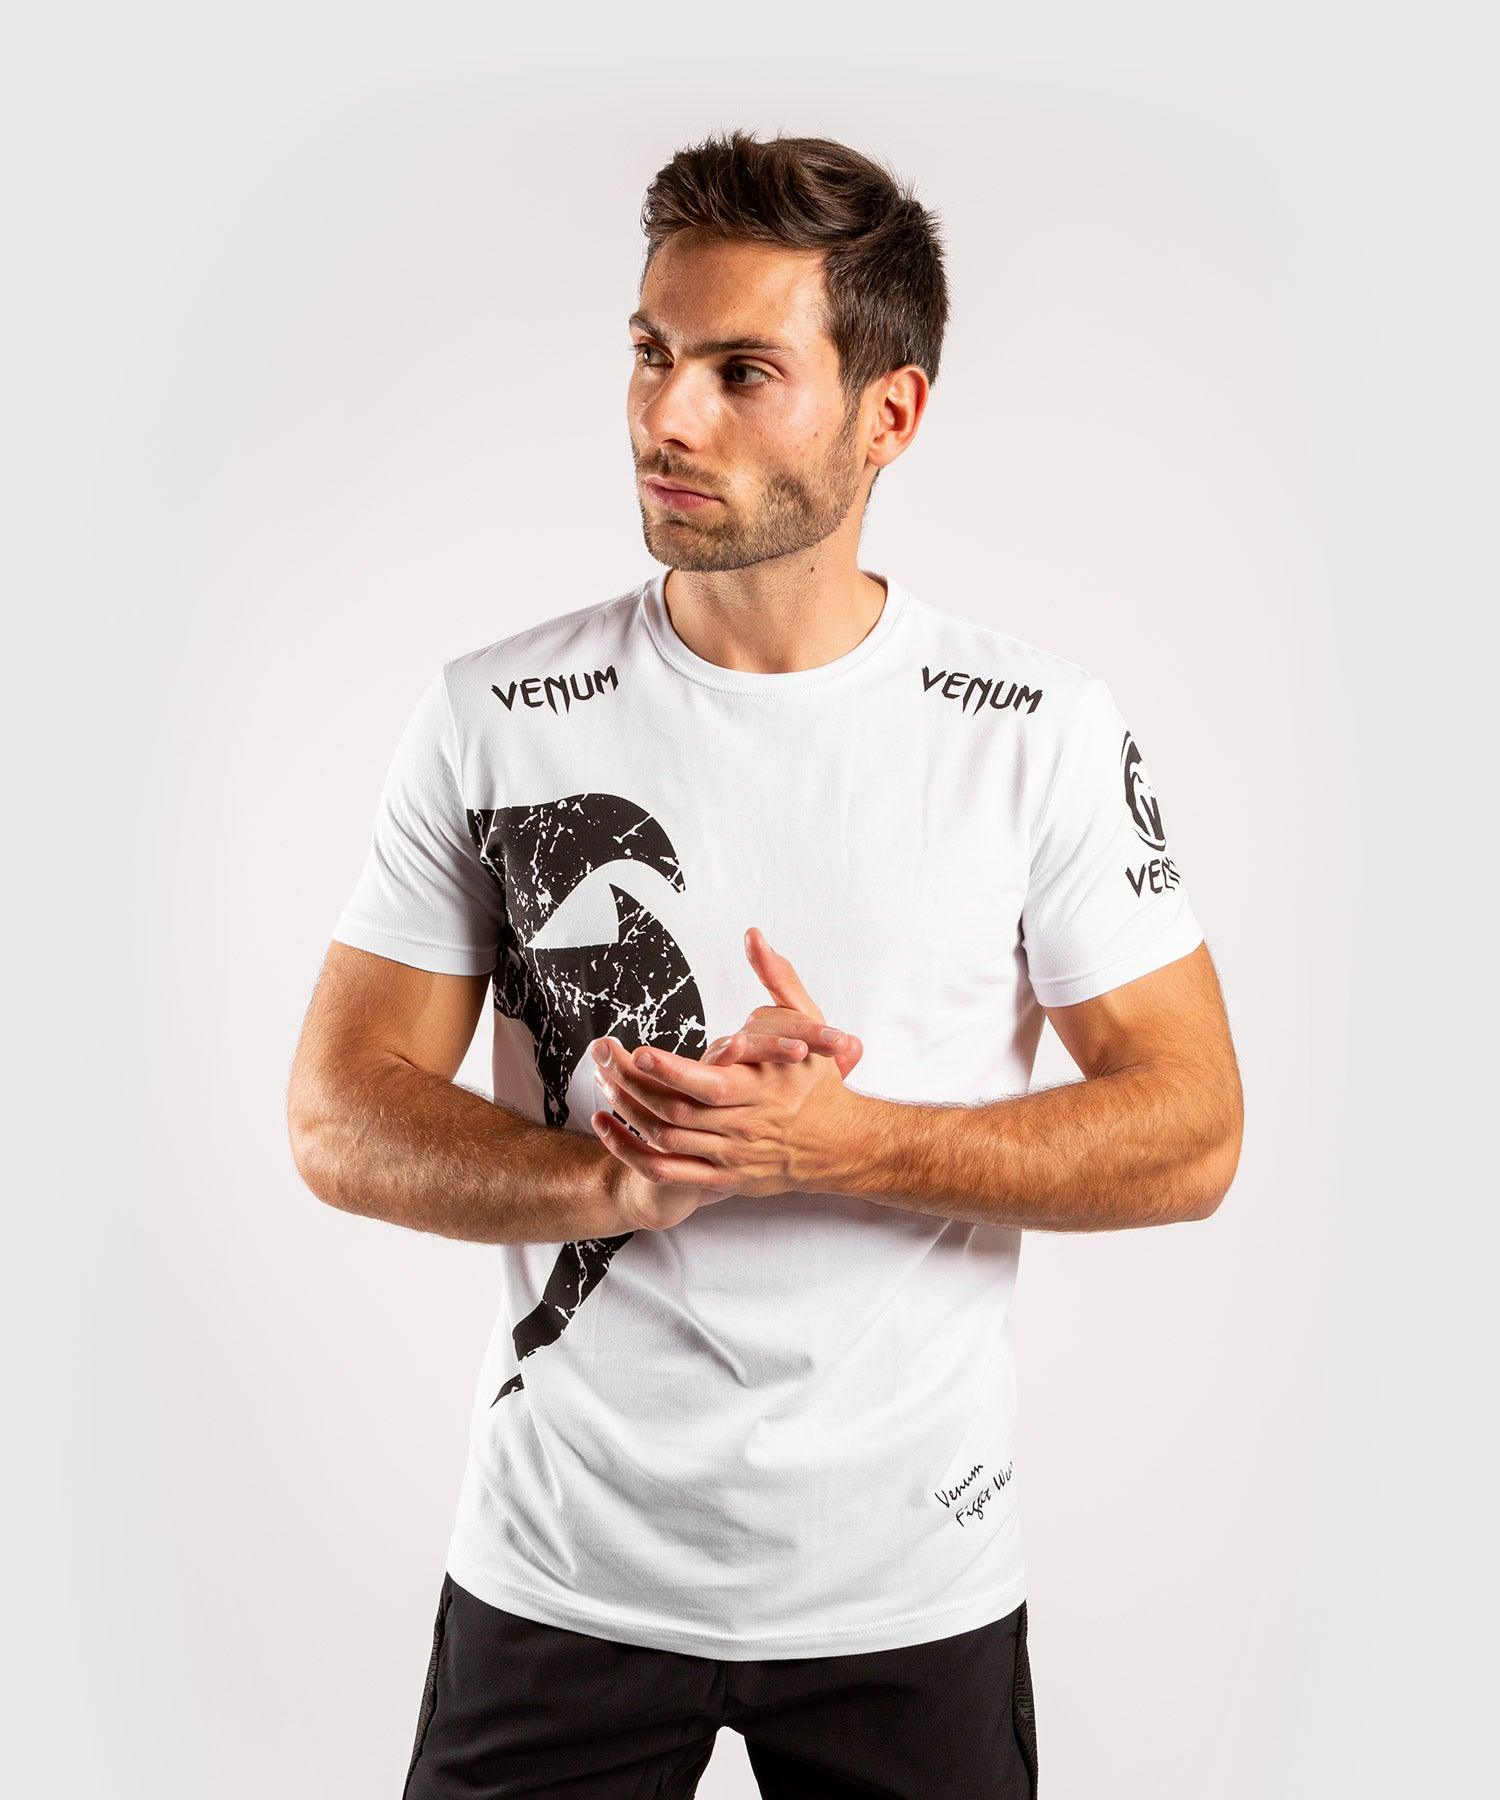 Venum Giant T-shirt - White picture 1